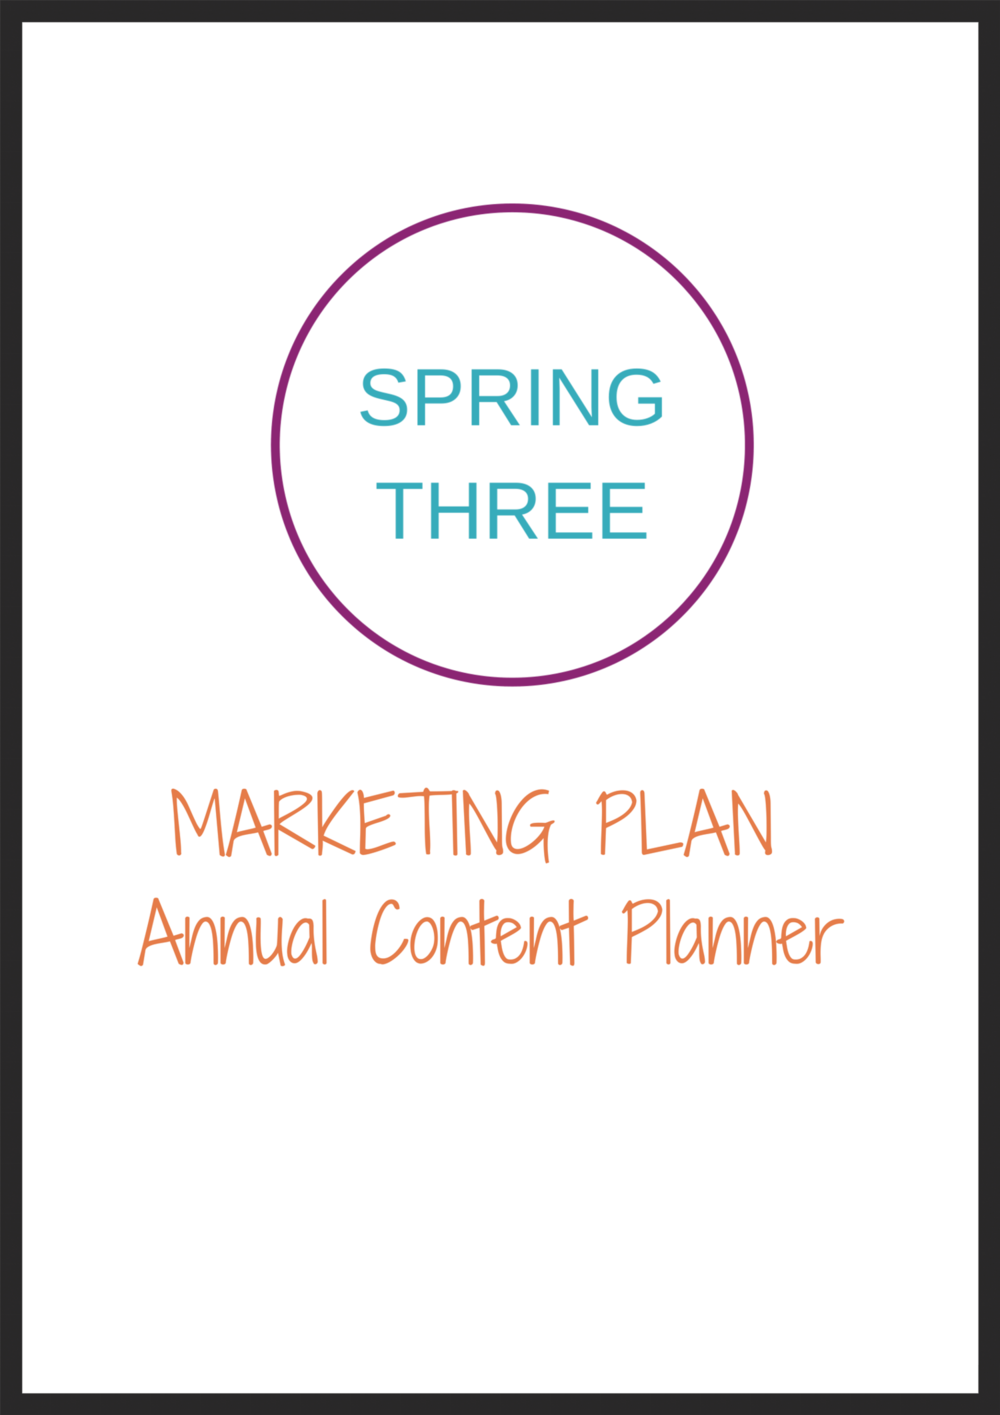 Spring Three Annual Content Planner